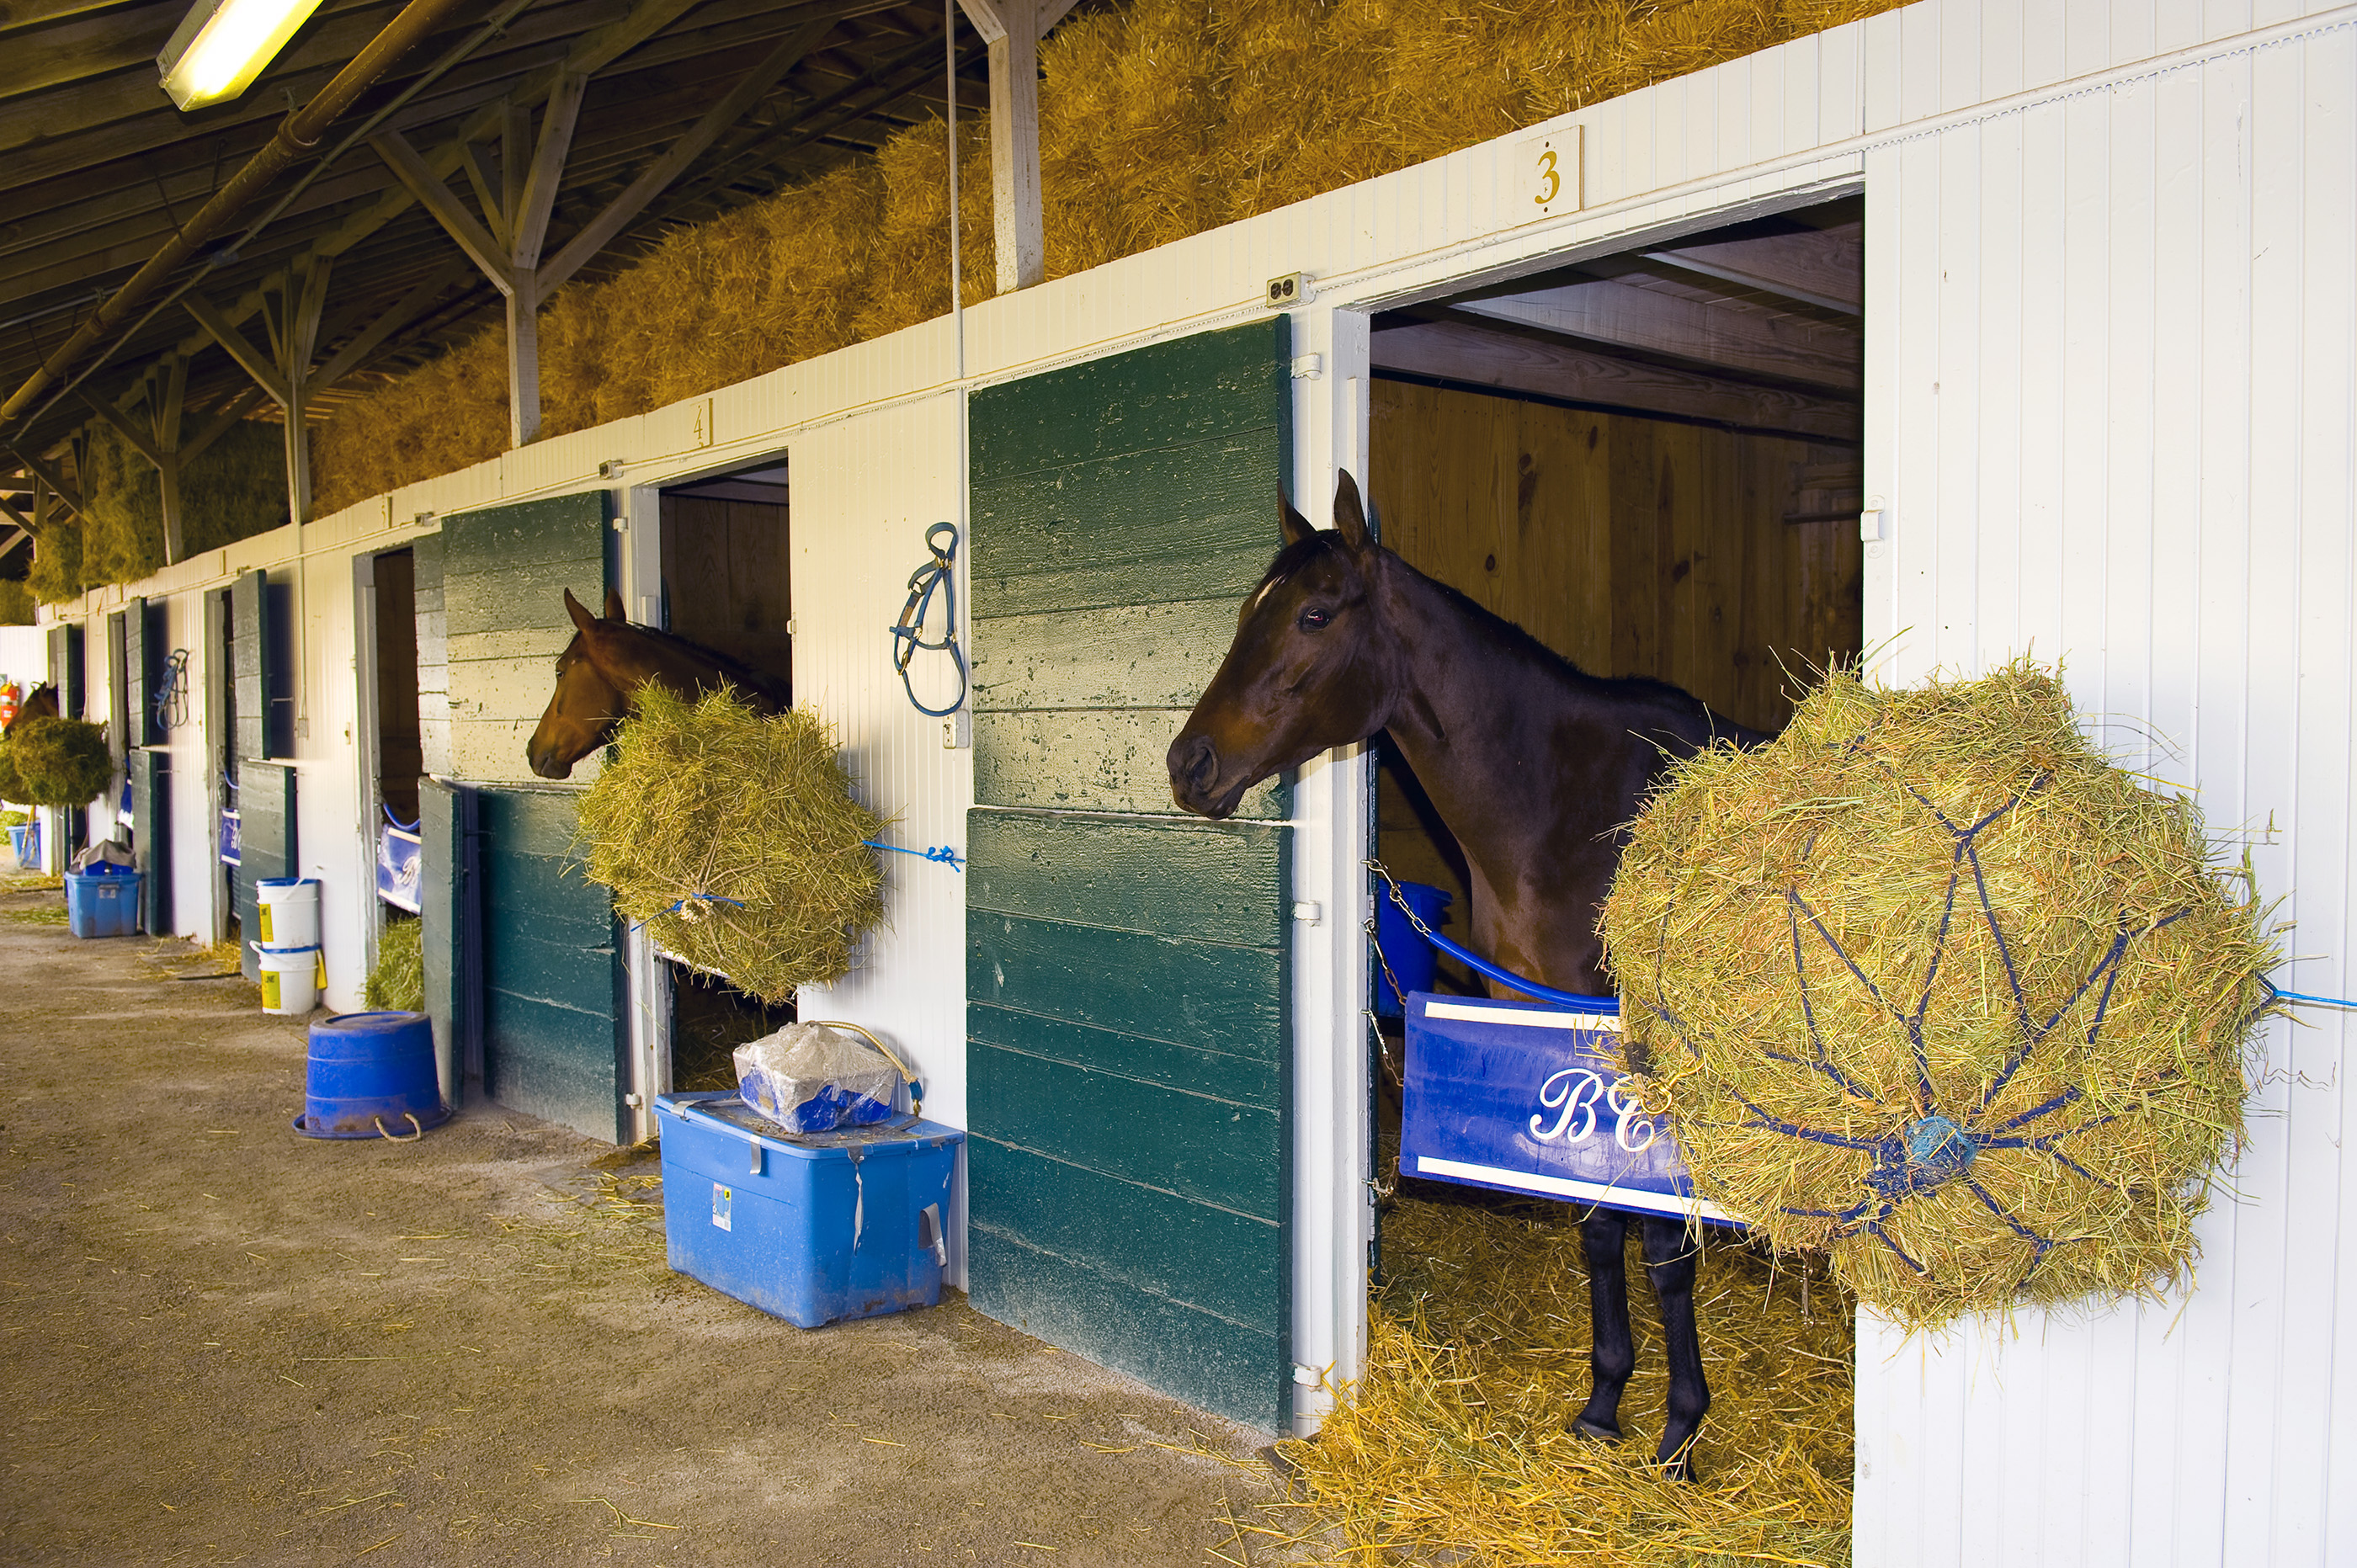 Horses in the stables at Keeneland Race Course